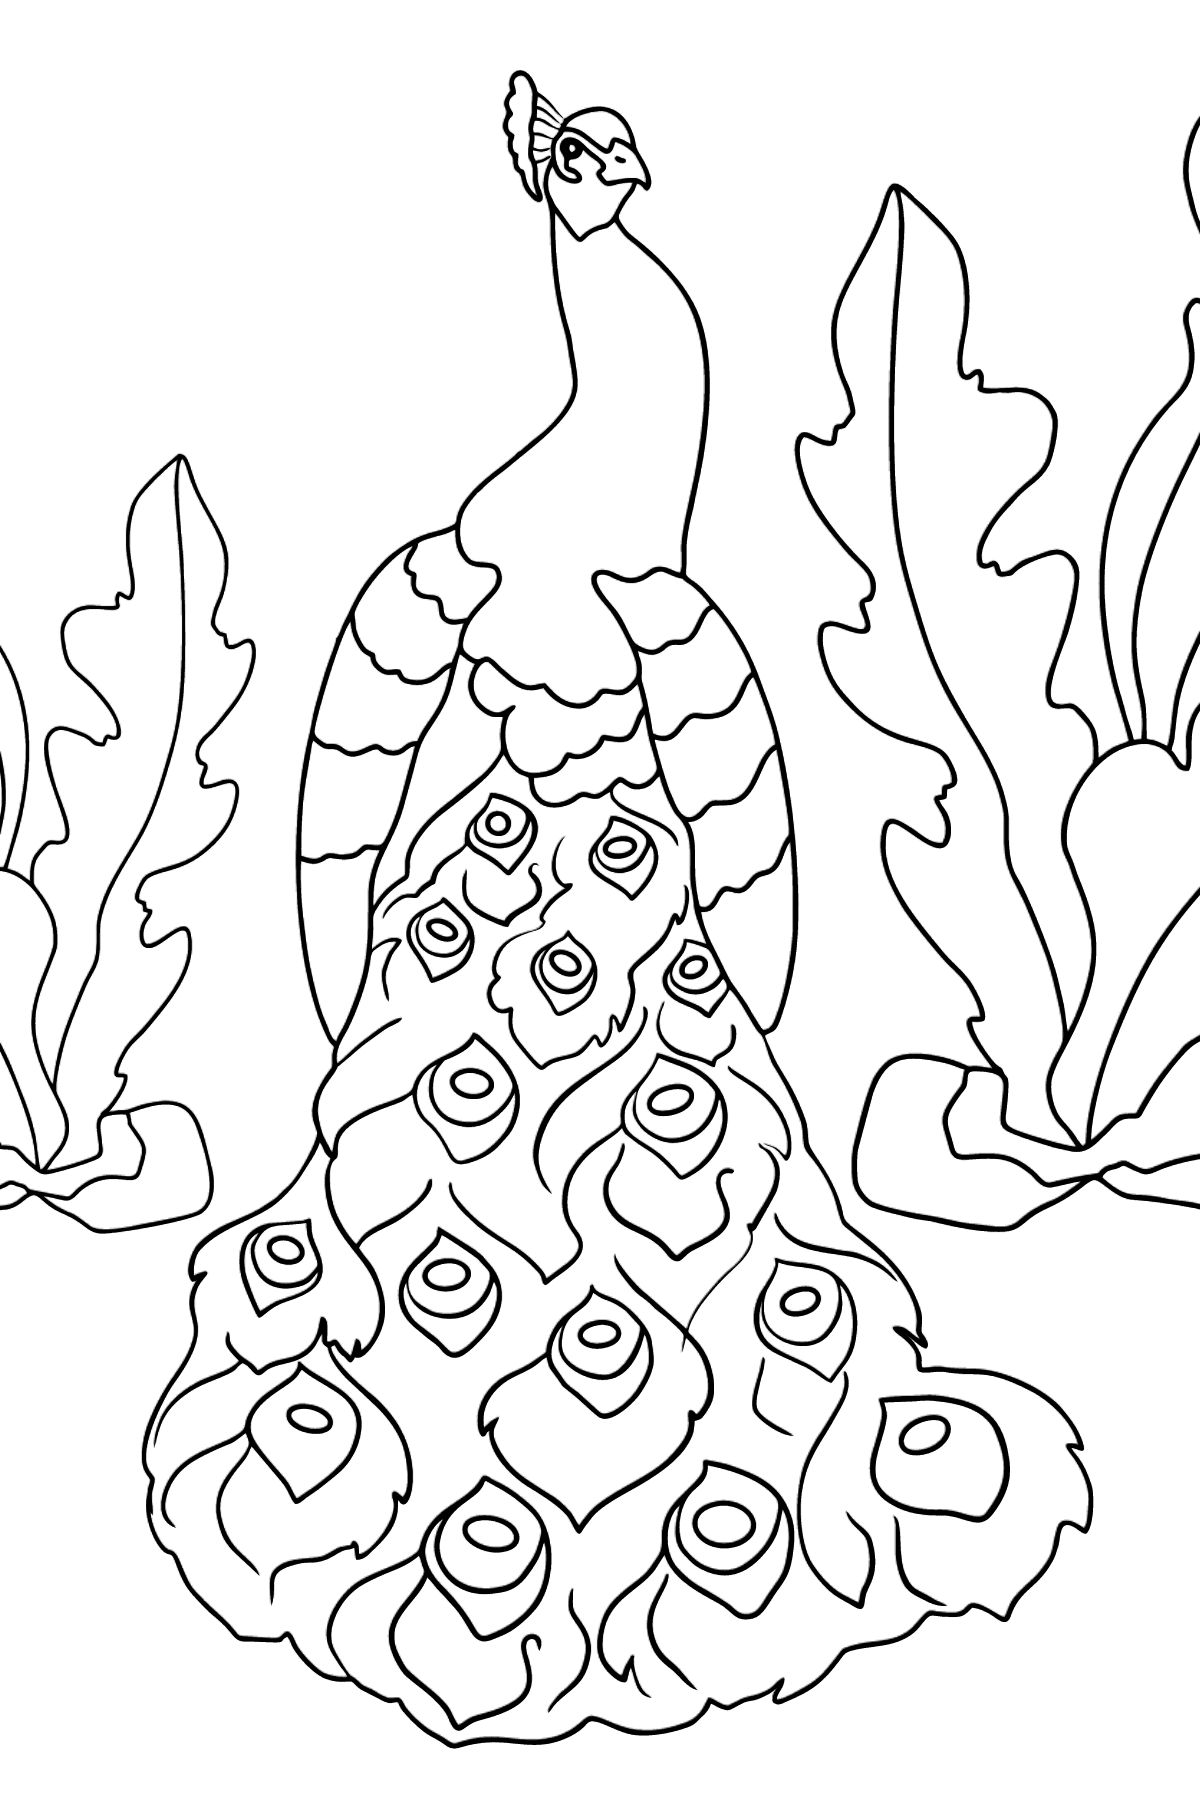 A Peacock Coloring Page - Coloring Pages for Kids